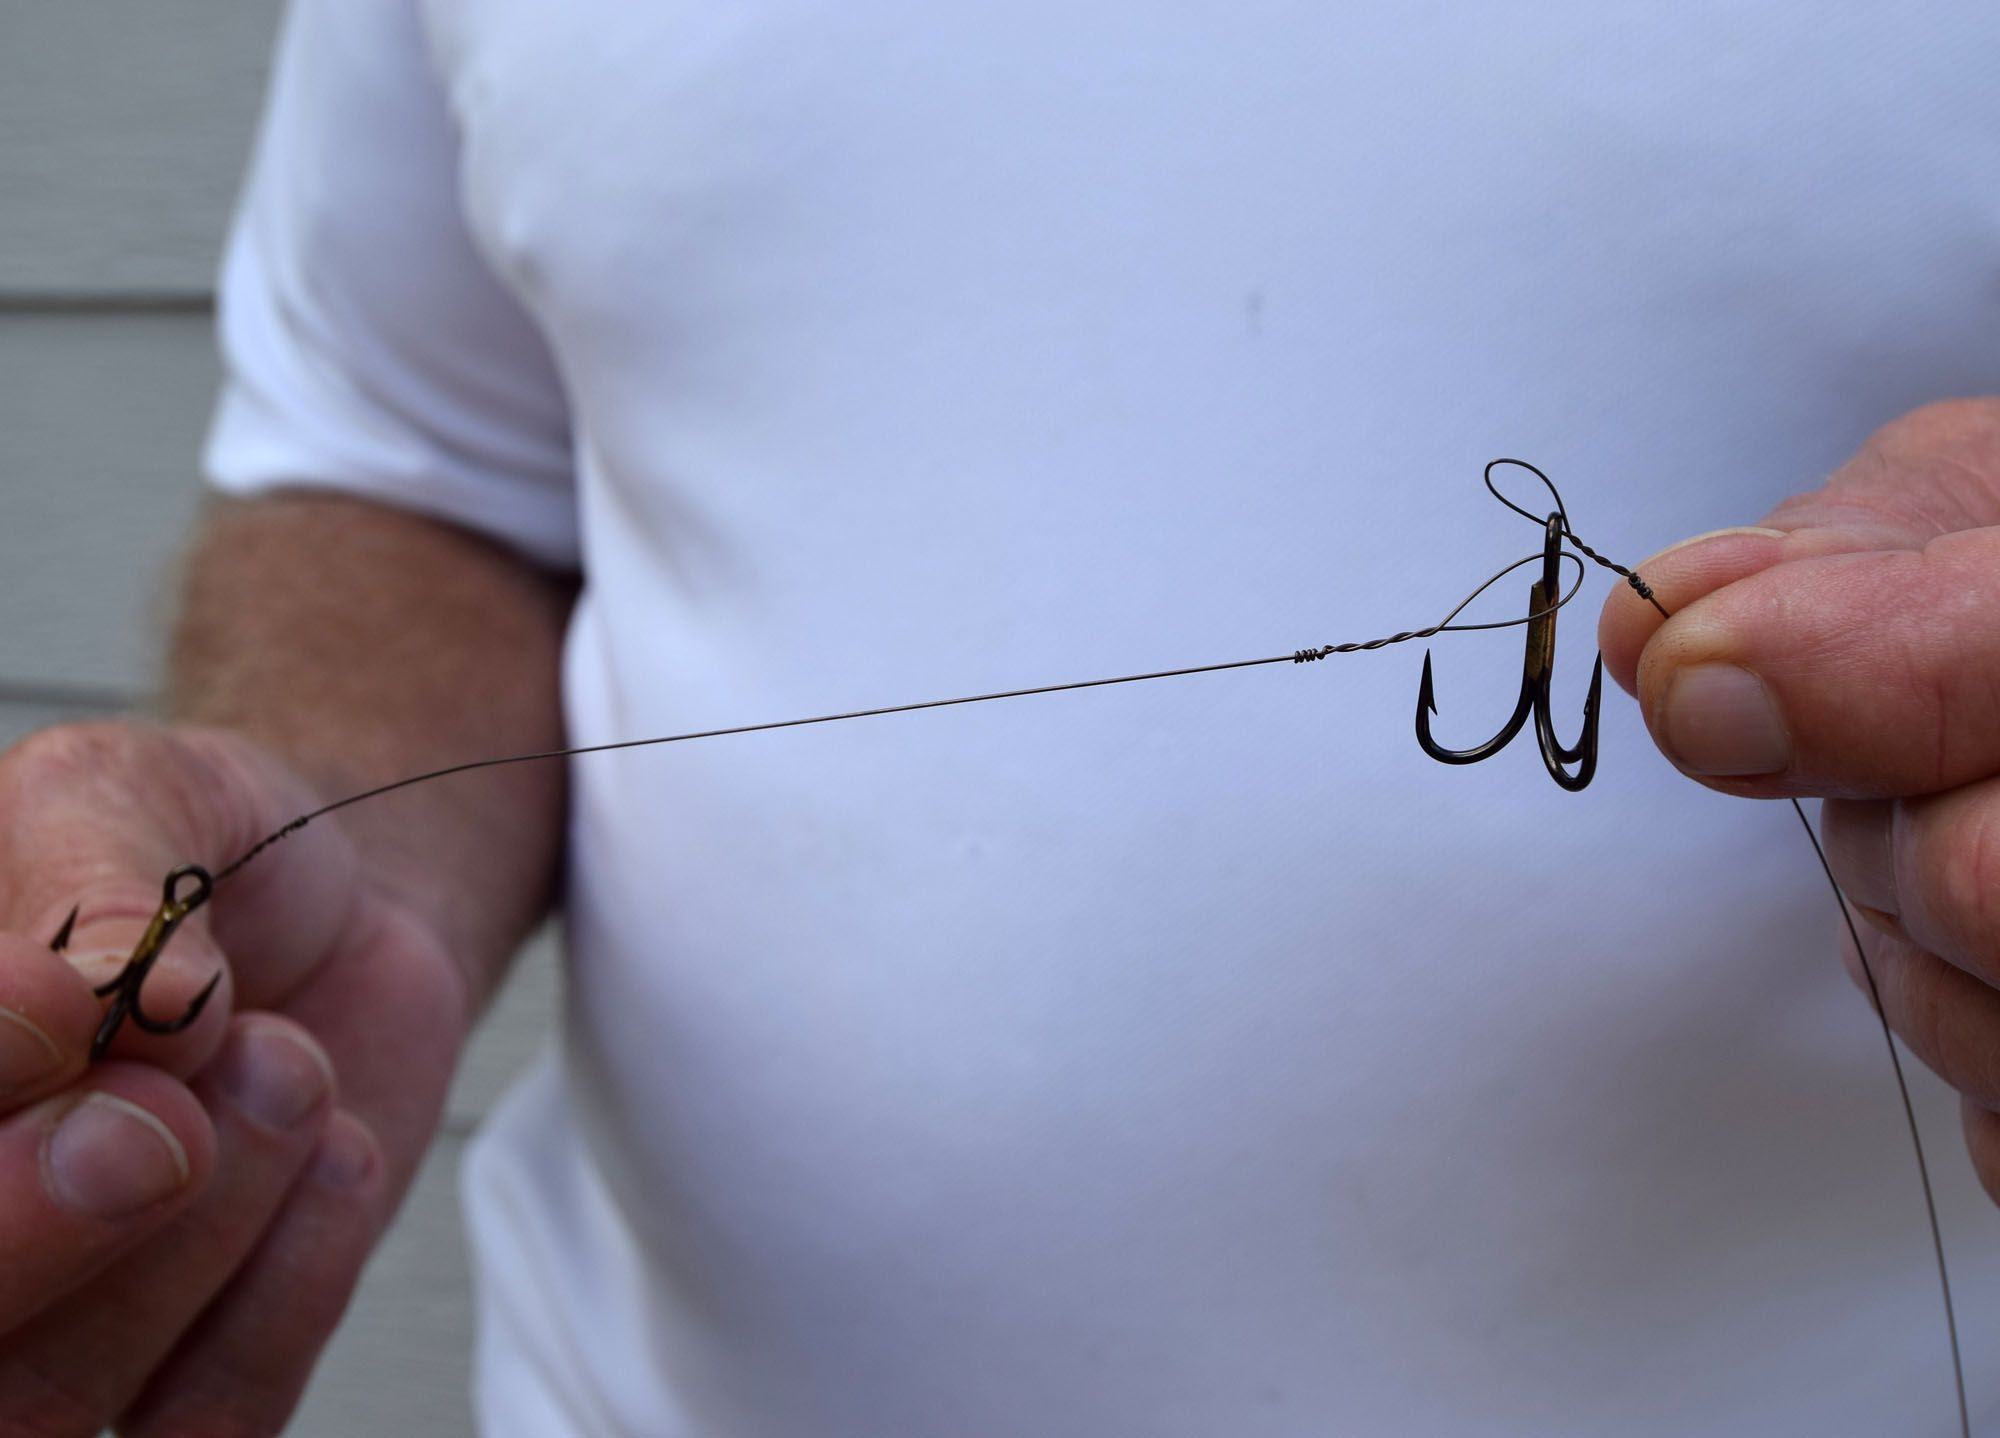 Two treble hooks twisted onto each end of a wire section.